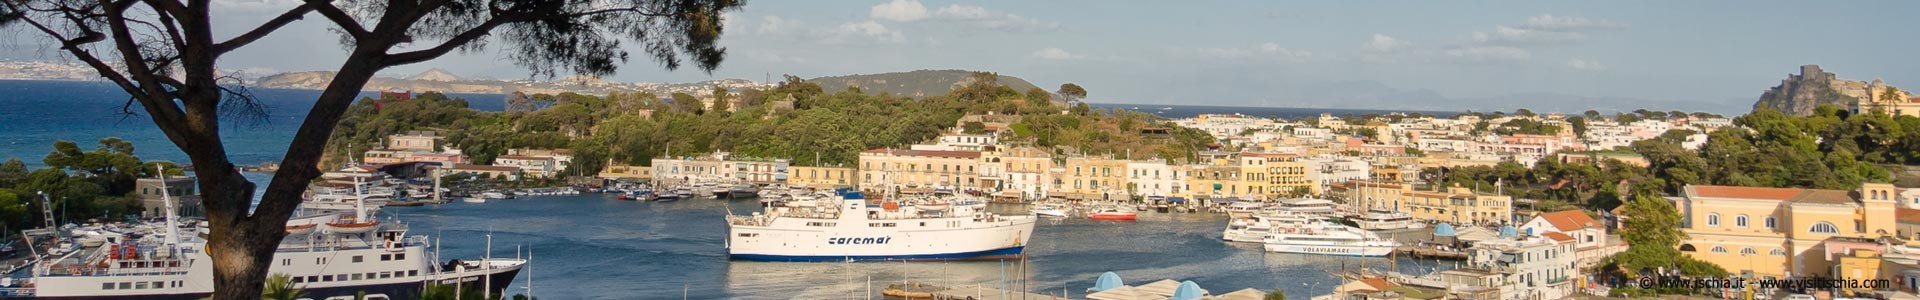 How to get Ischia